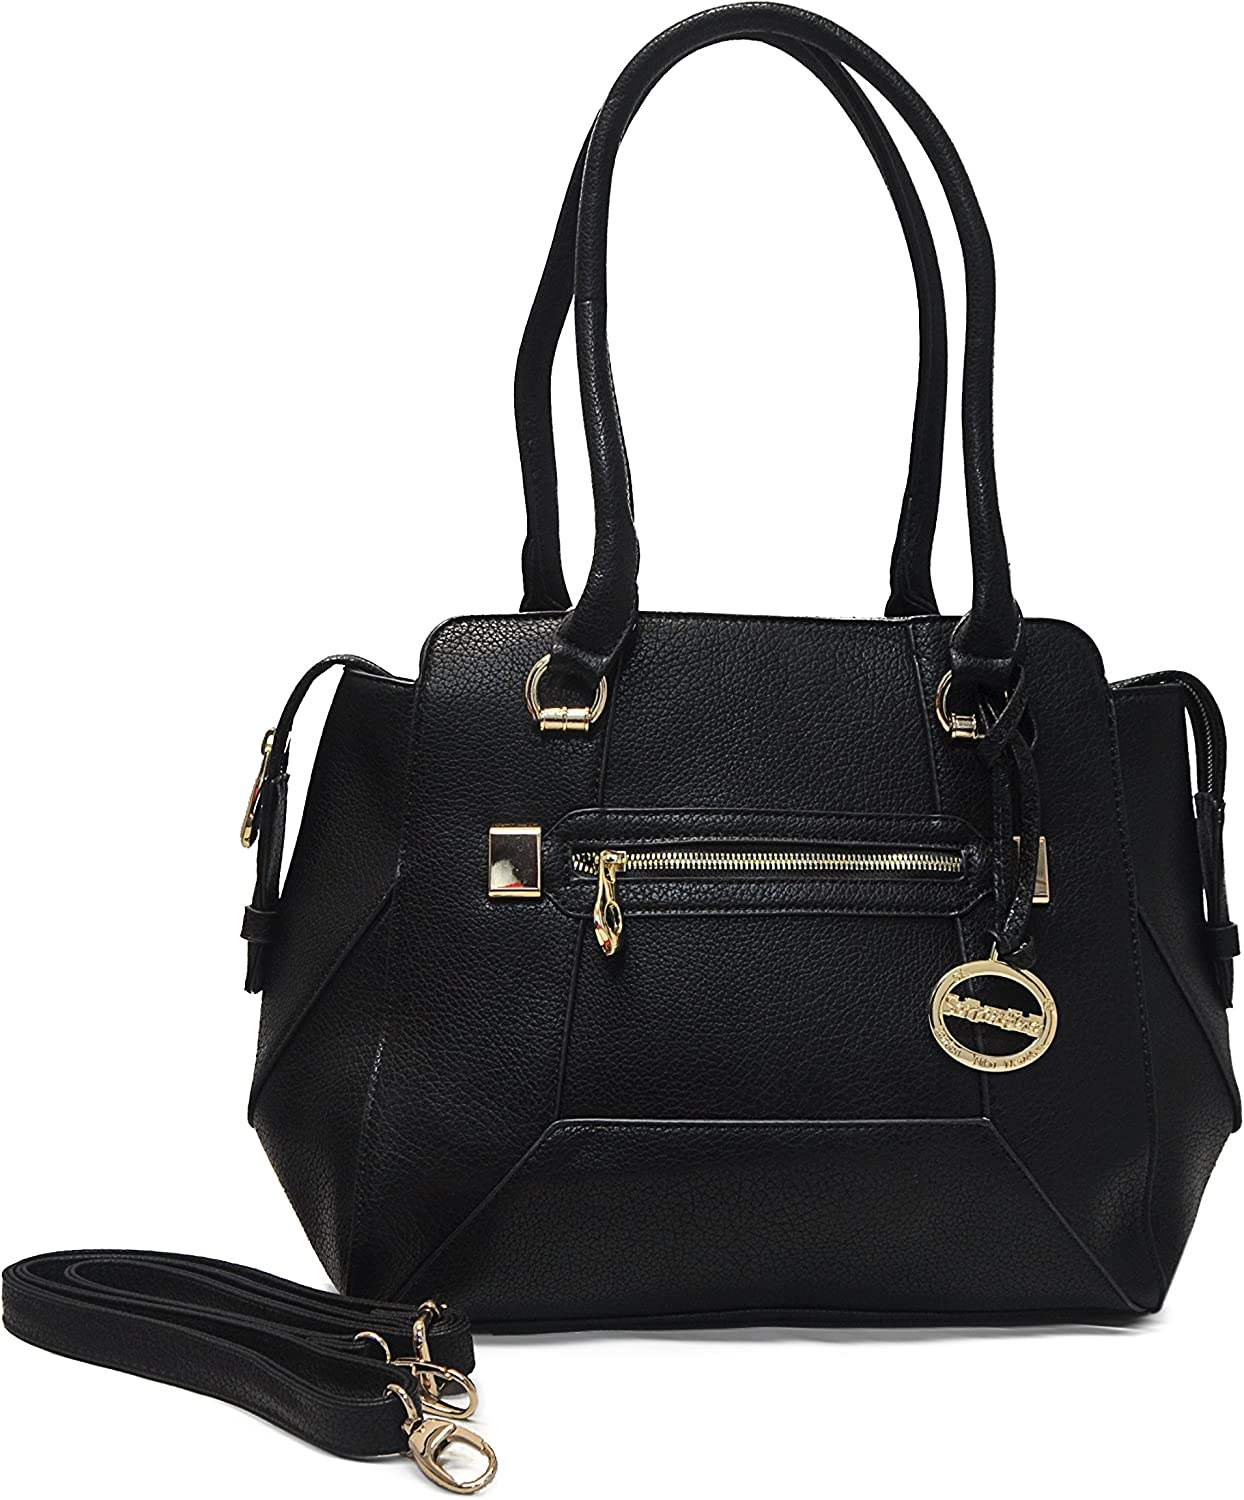 Sorrentino Women's Handbag No. 763 Office Tote Handbag